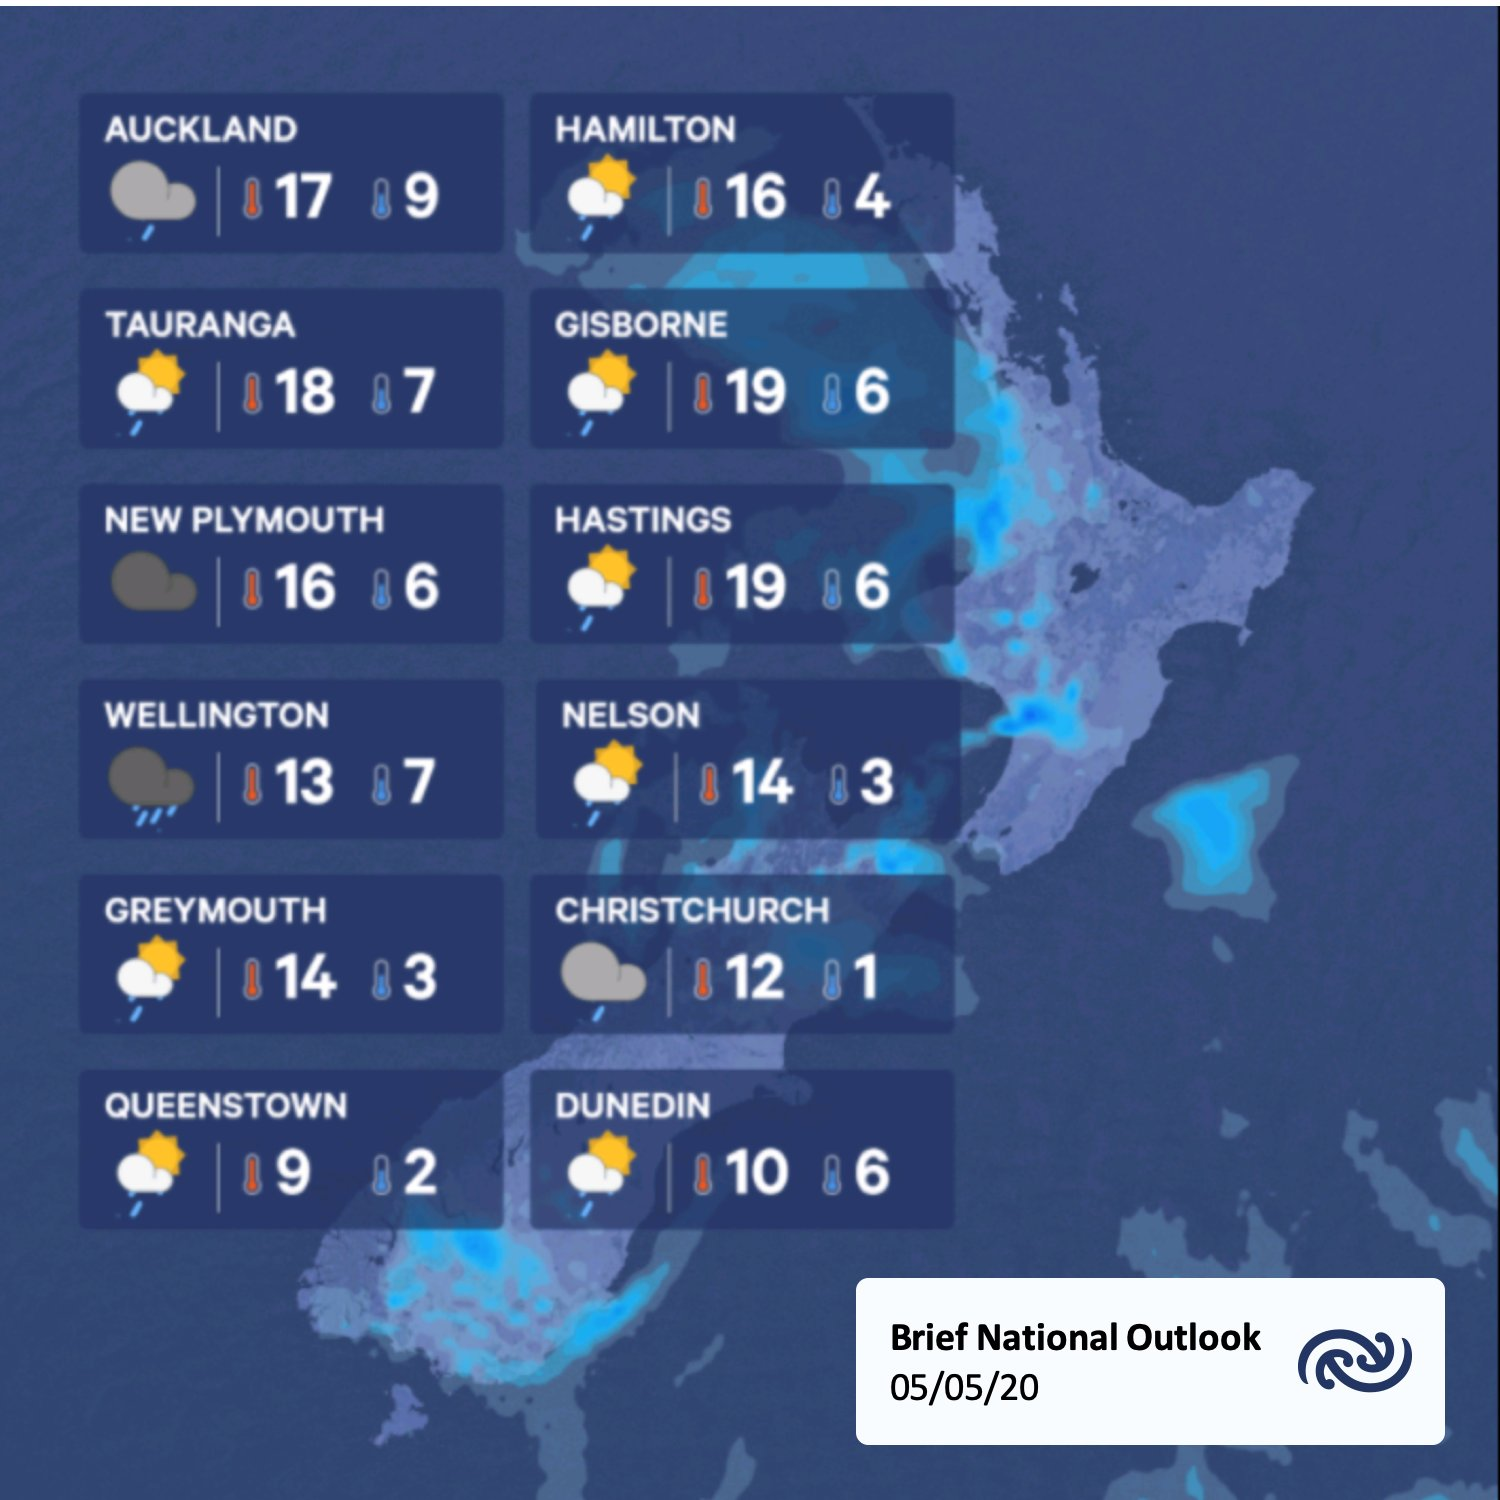 A sneak peak at the day ahead, here's a brief look ahead to the weather tomorrow. Full details at bit.ly/metservicenz    ^Tui https://t.co/Q1K3t2XpkA